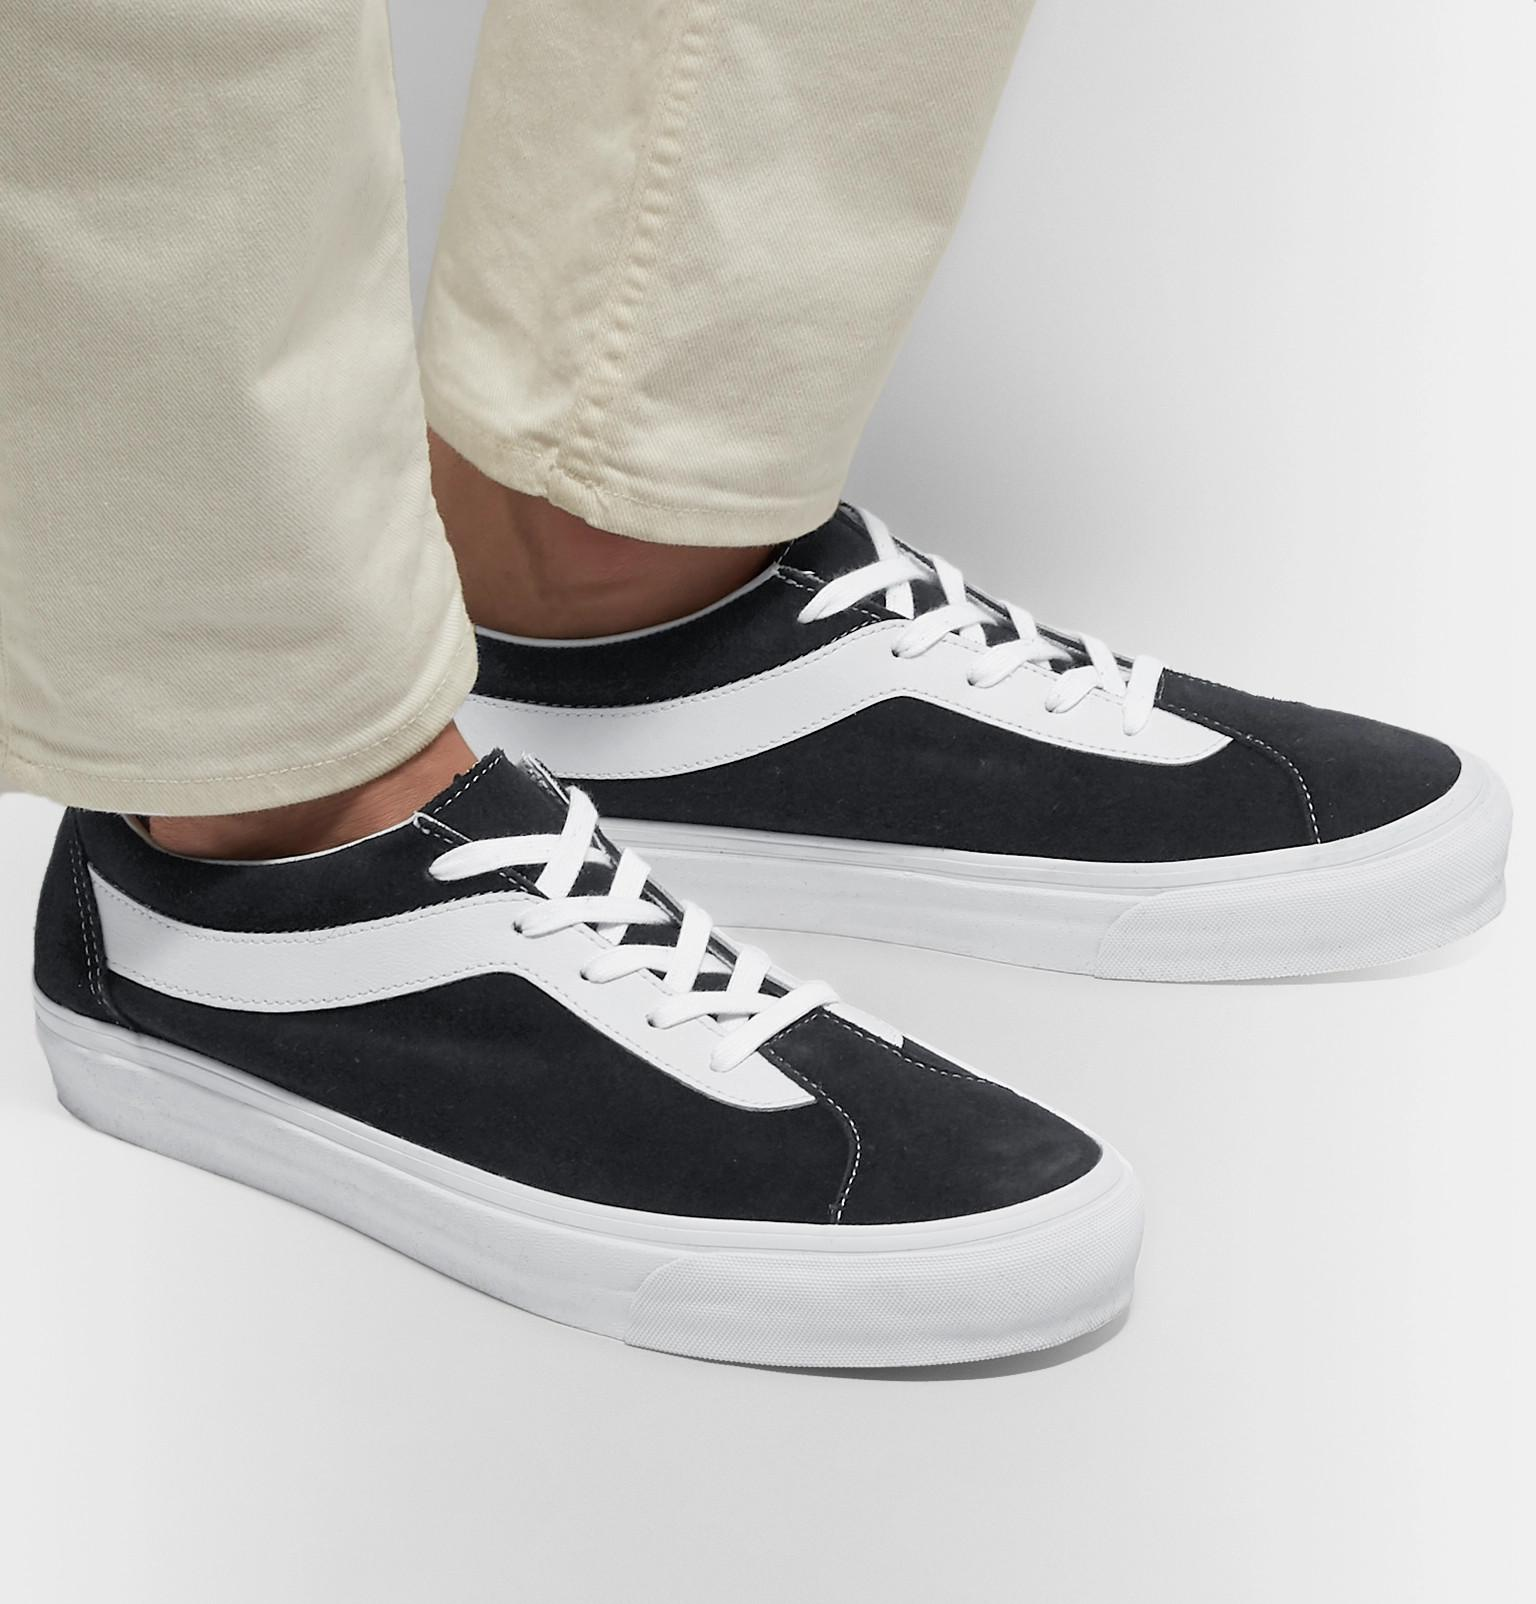 5ff317bf3227 Vans - Black Staple Bold Ni Suede And Leather Sneakers for Men - Lyst. View  fullscreen